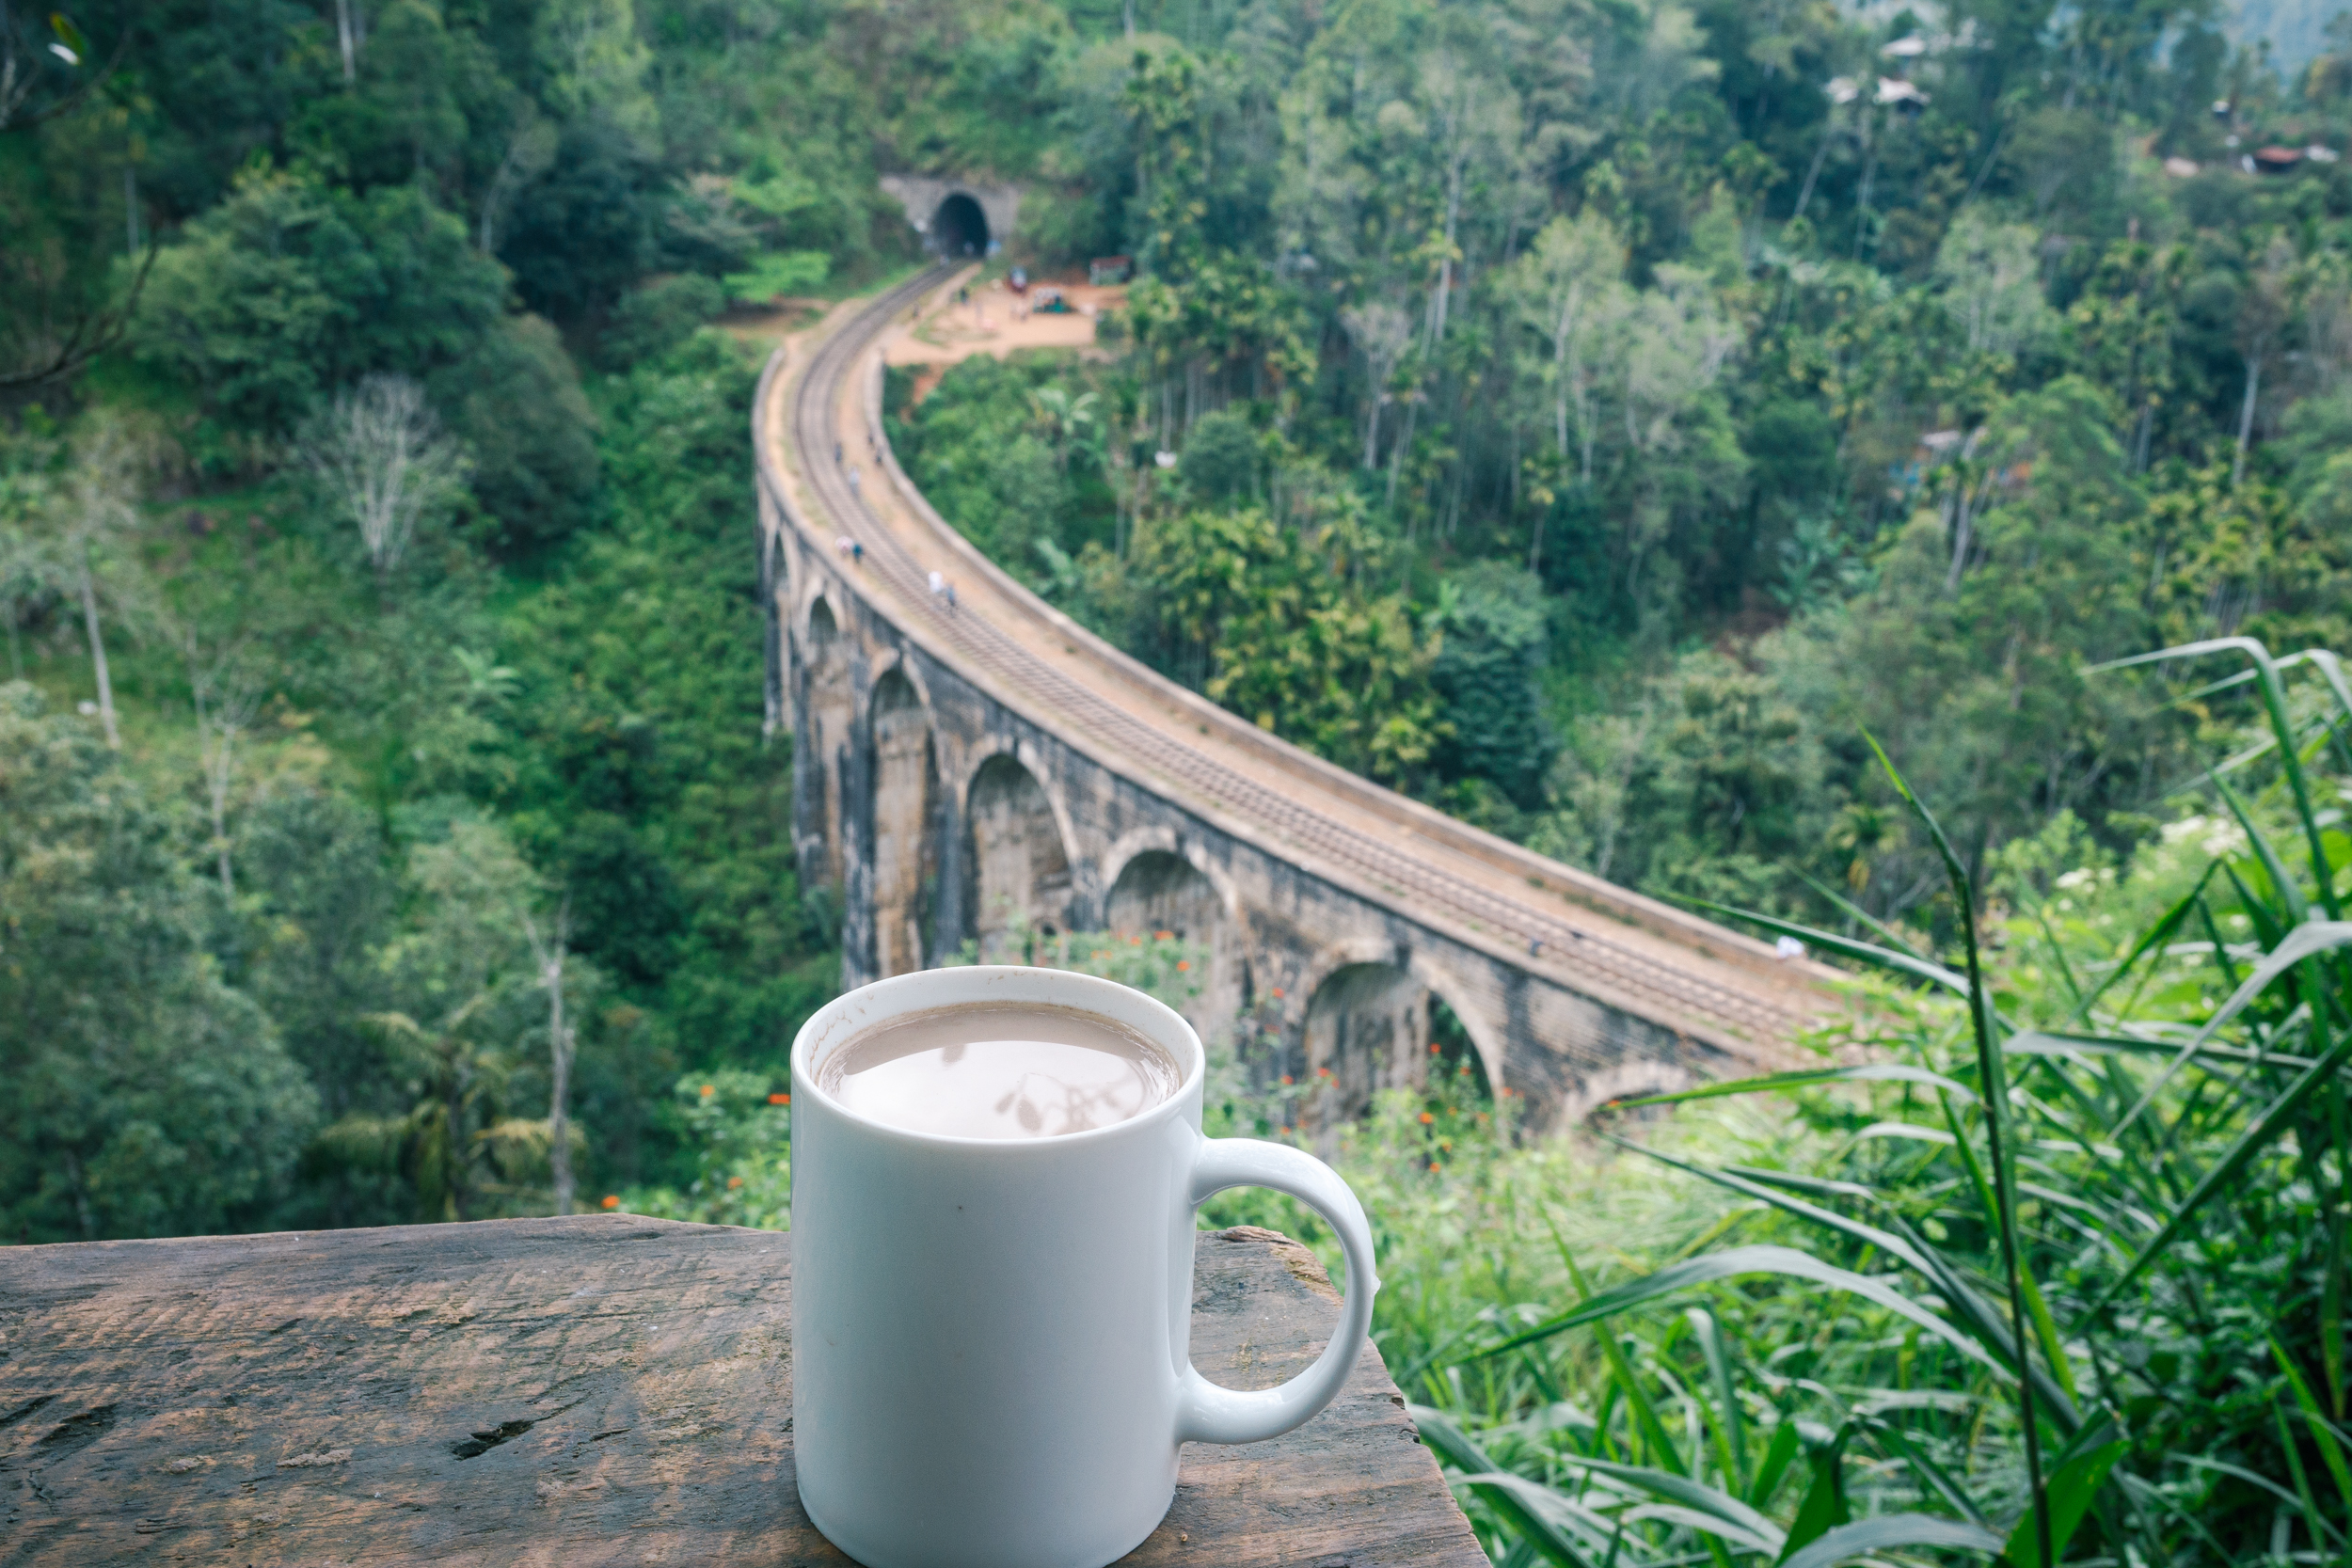 Enjoying a cup of joe over the tracks at the Nine Arch Bridge.